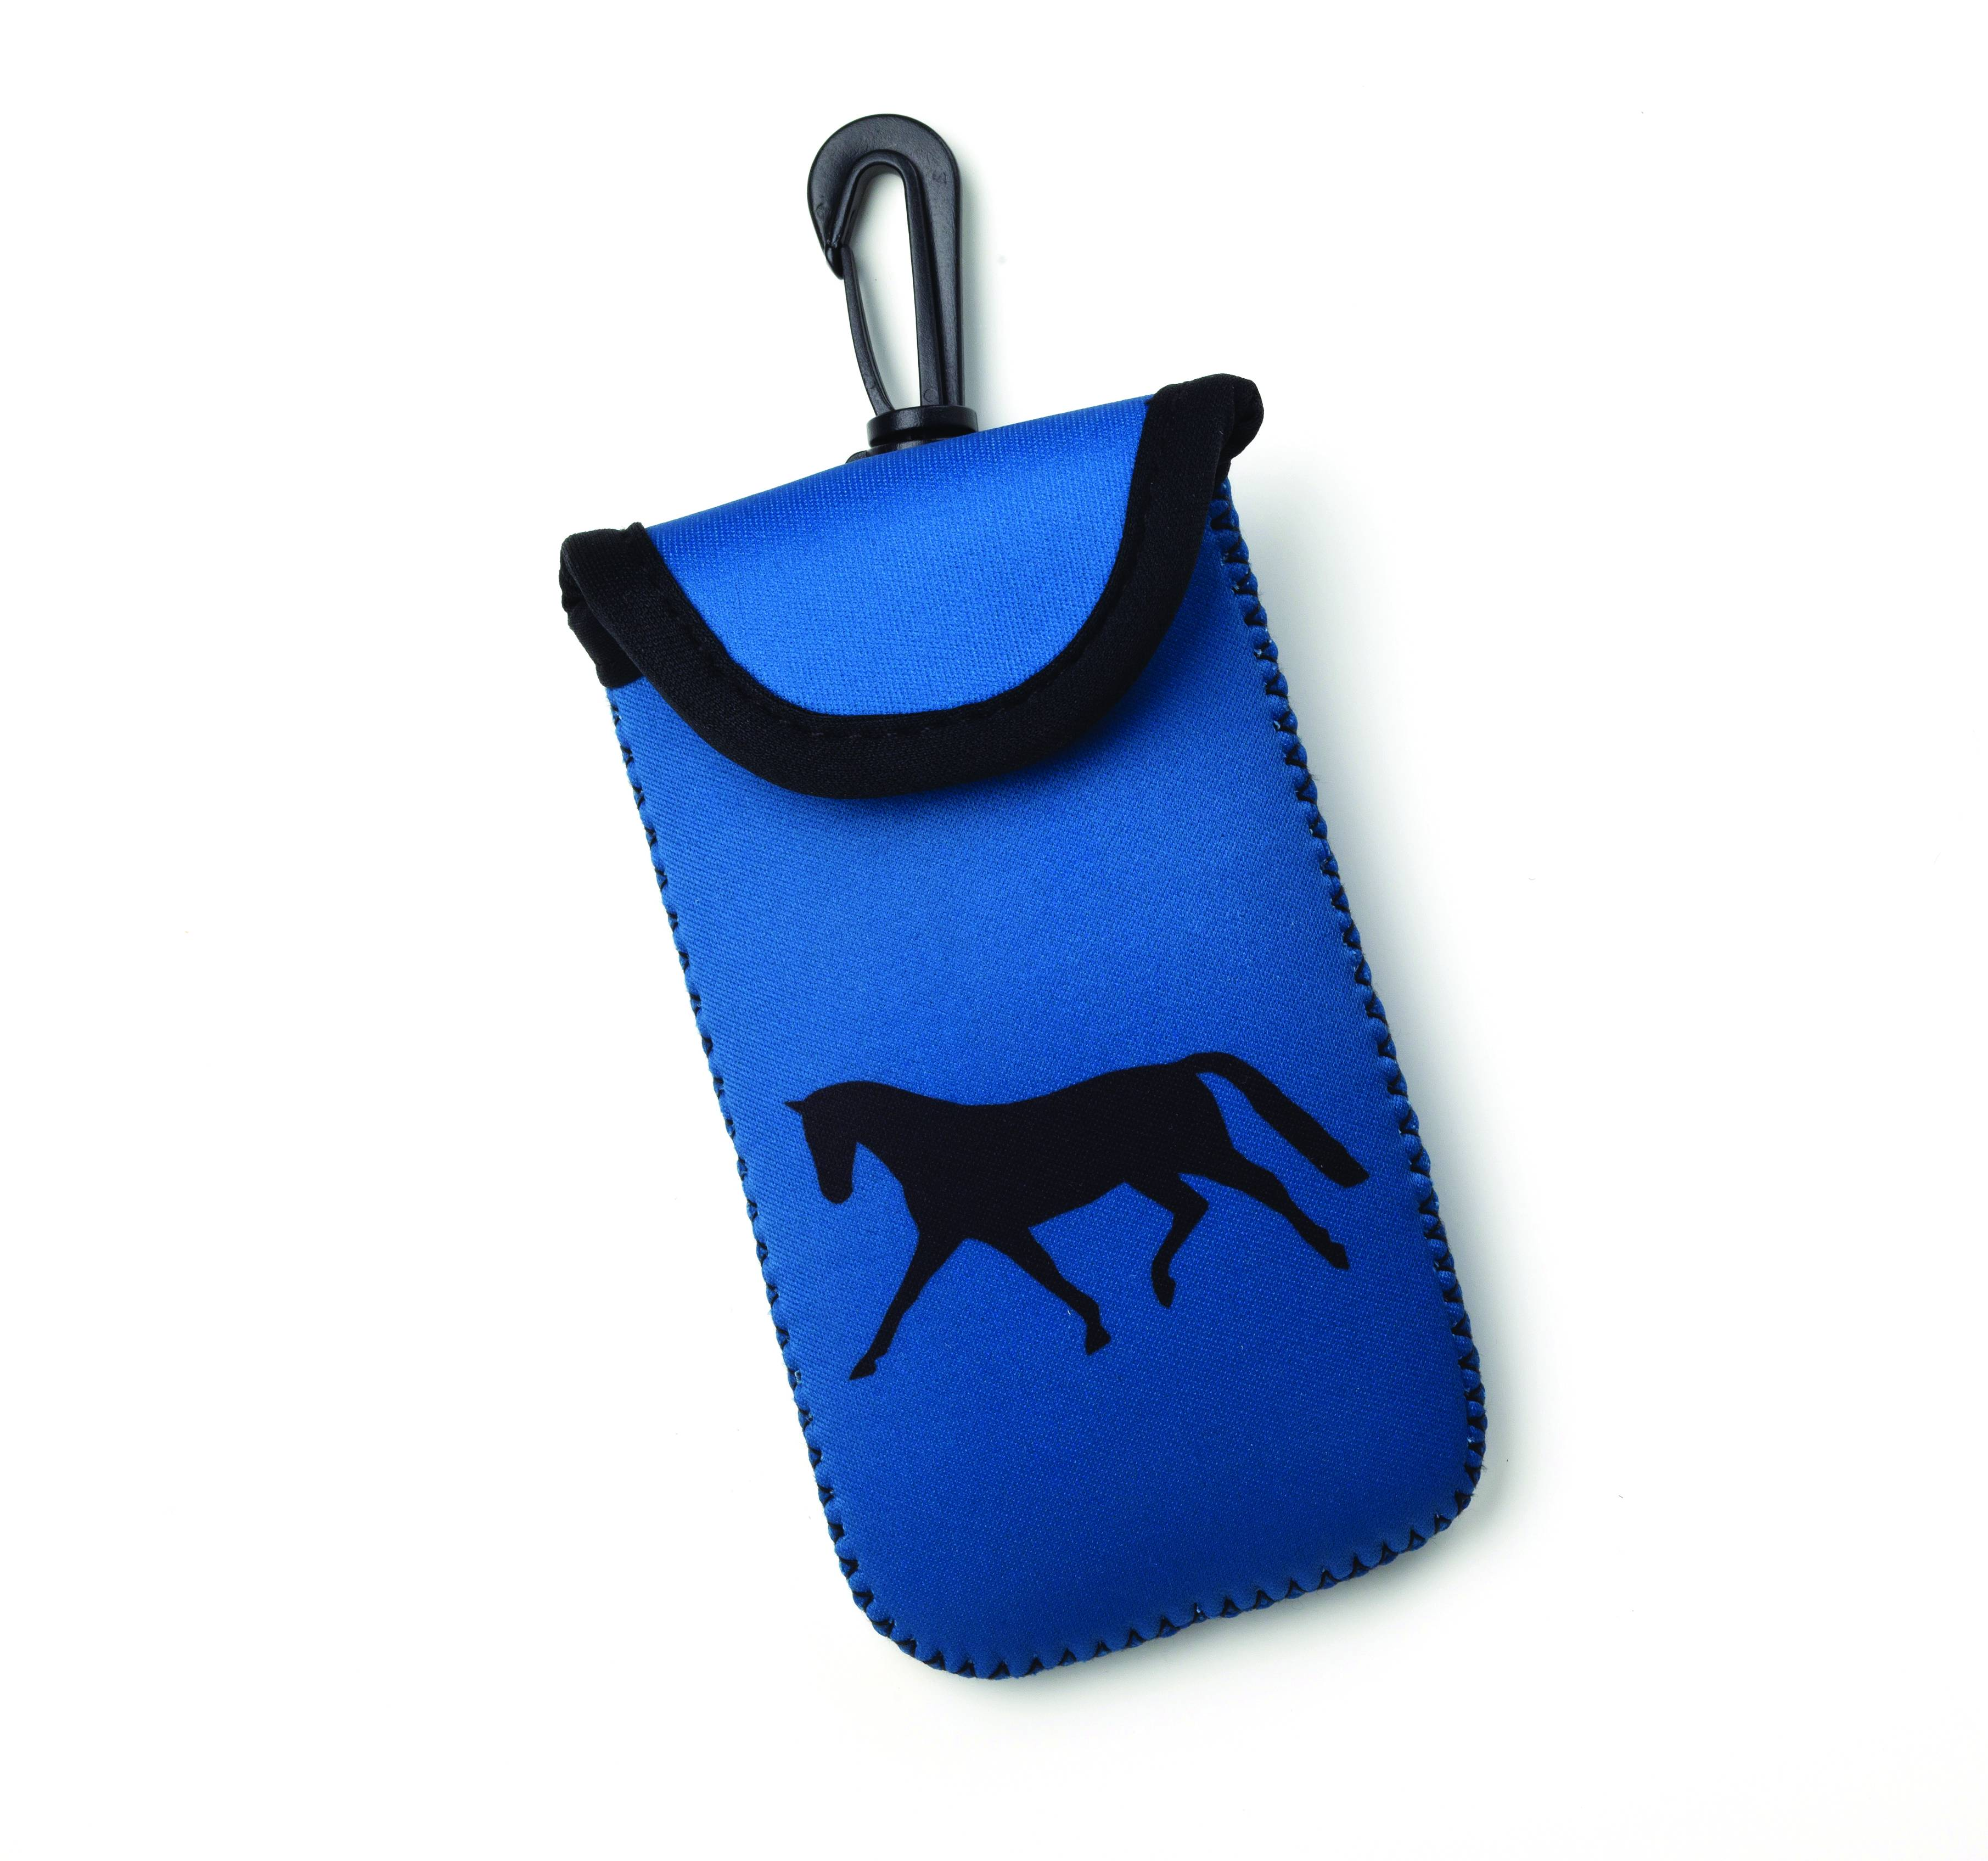 Kelley Tek Trek Neoprene Smart Phone Case - Teal with Dressage Horse